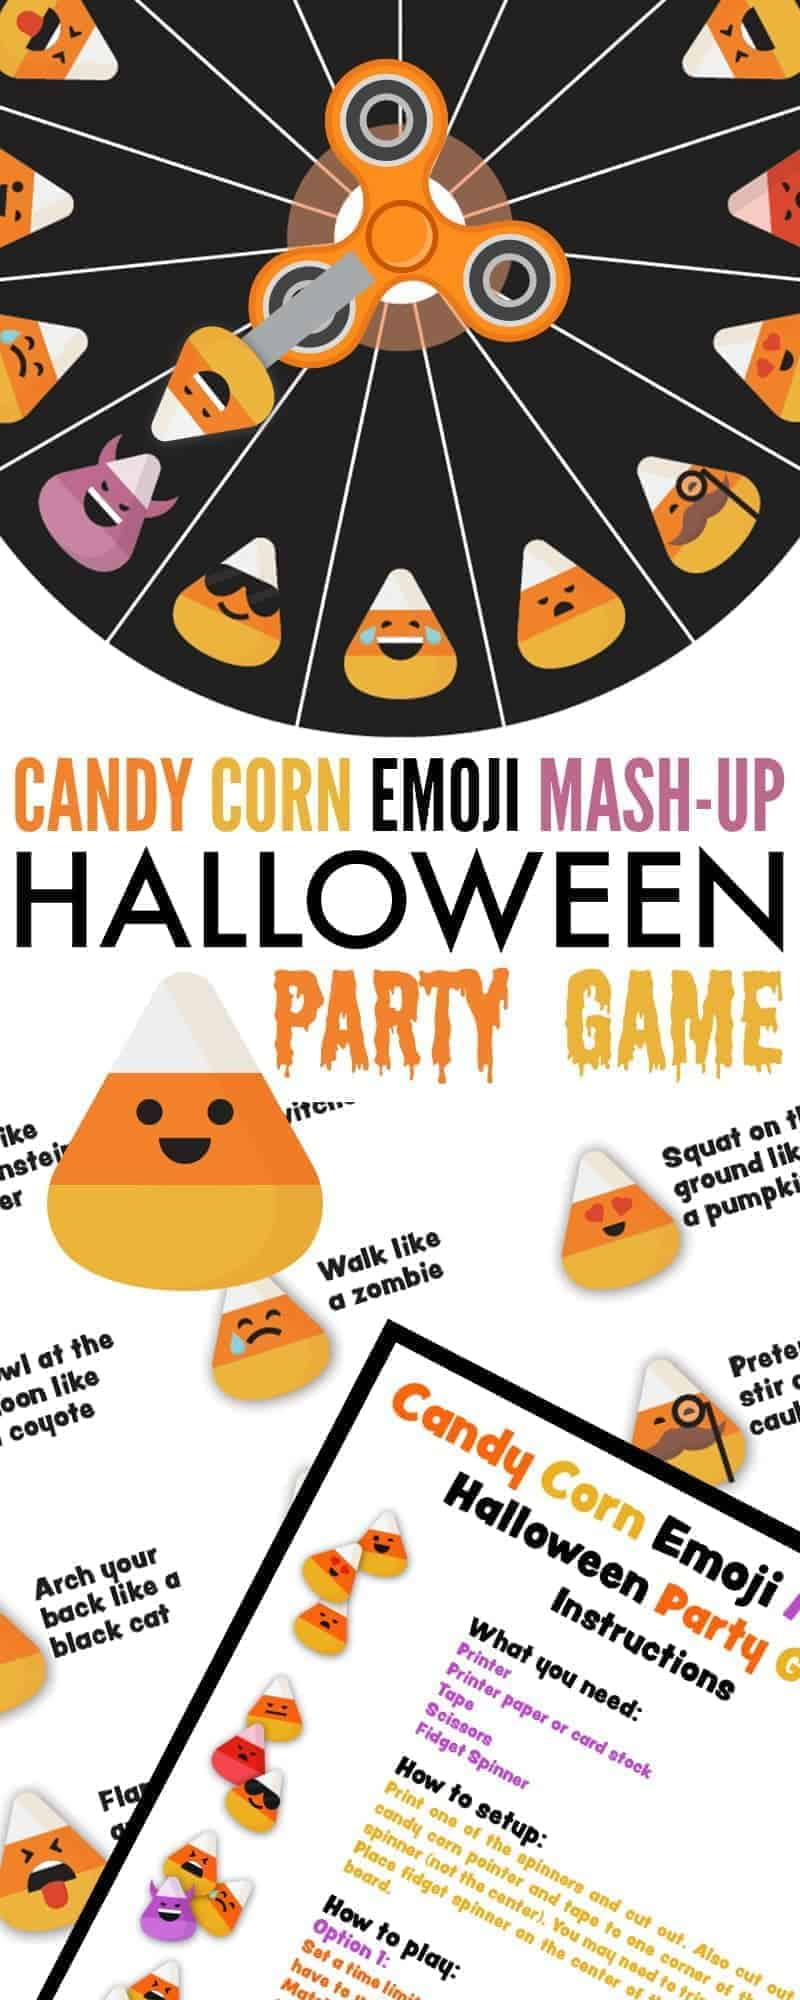 graphic relating to Mash Game Printable named Sweet Corn Emoji Mash-Up Halloween Celebration Recreation - 730 Sage Road